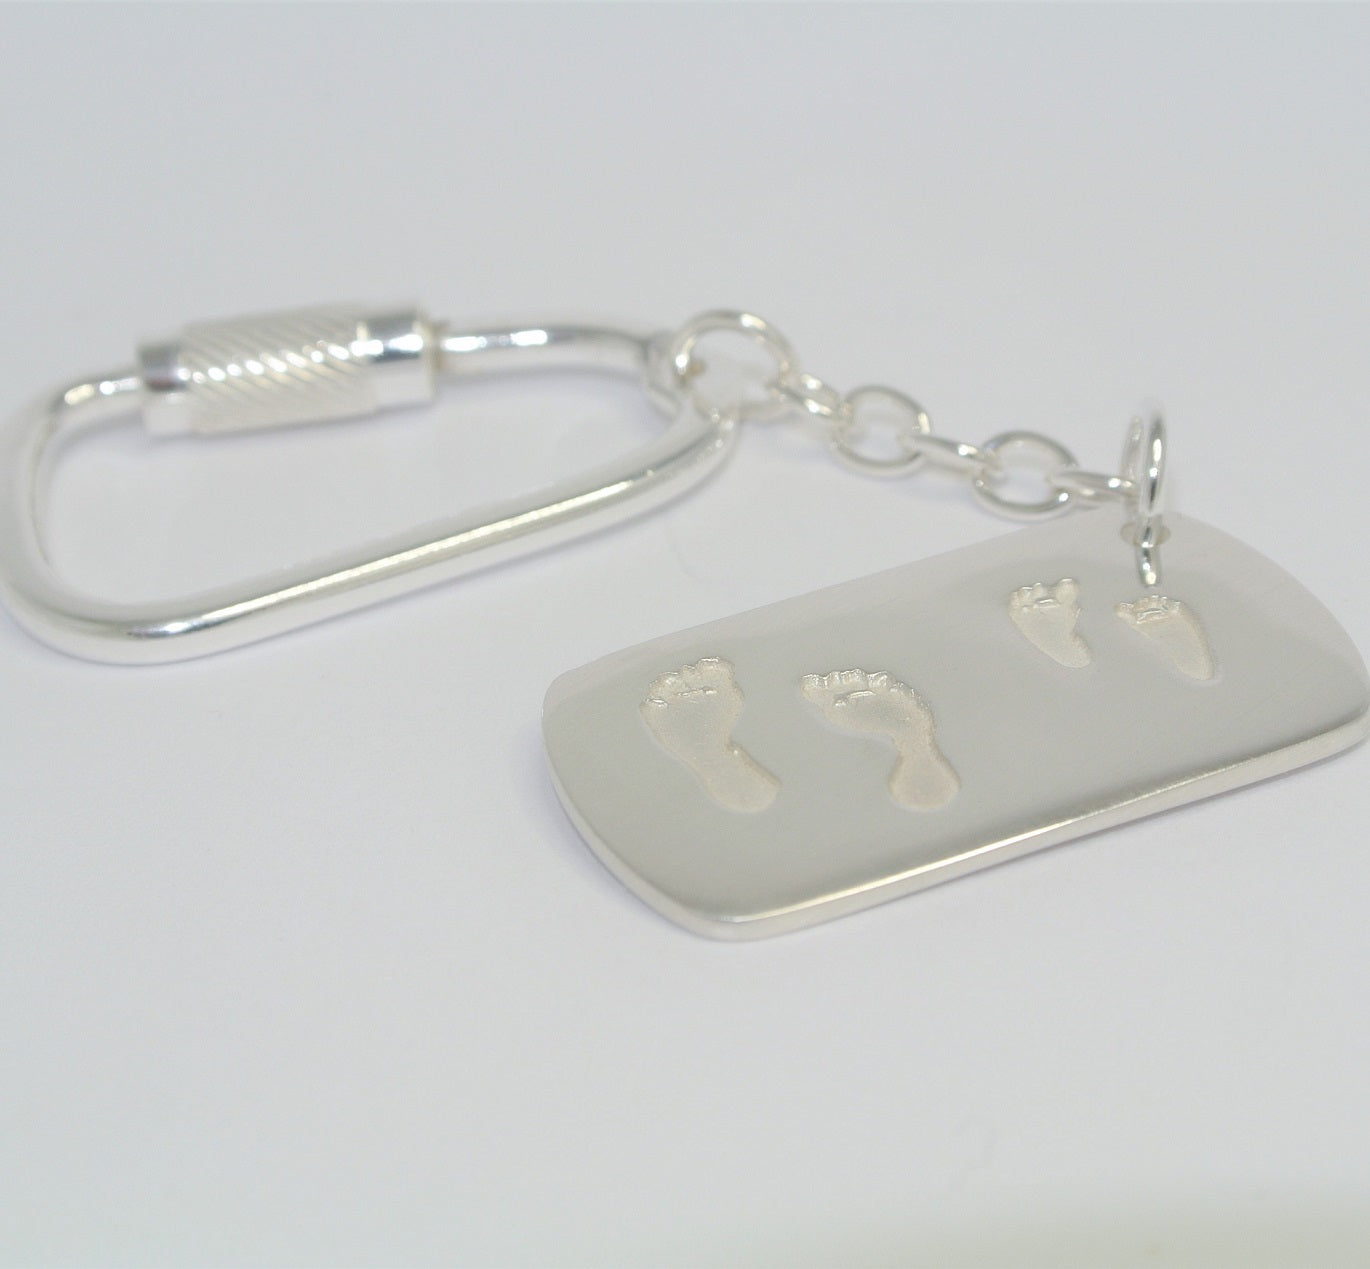 Two Pairs of Feet Dogtag Keyring